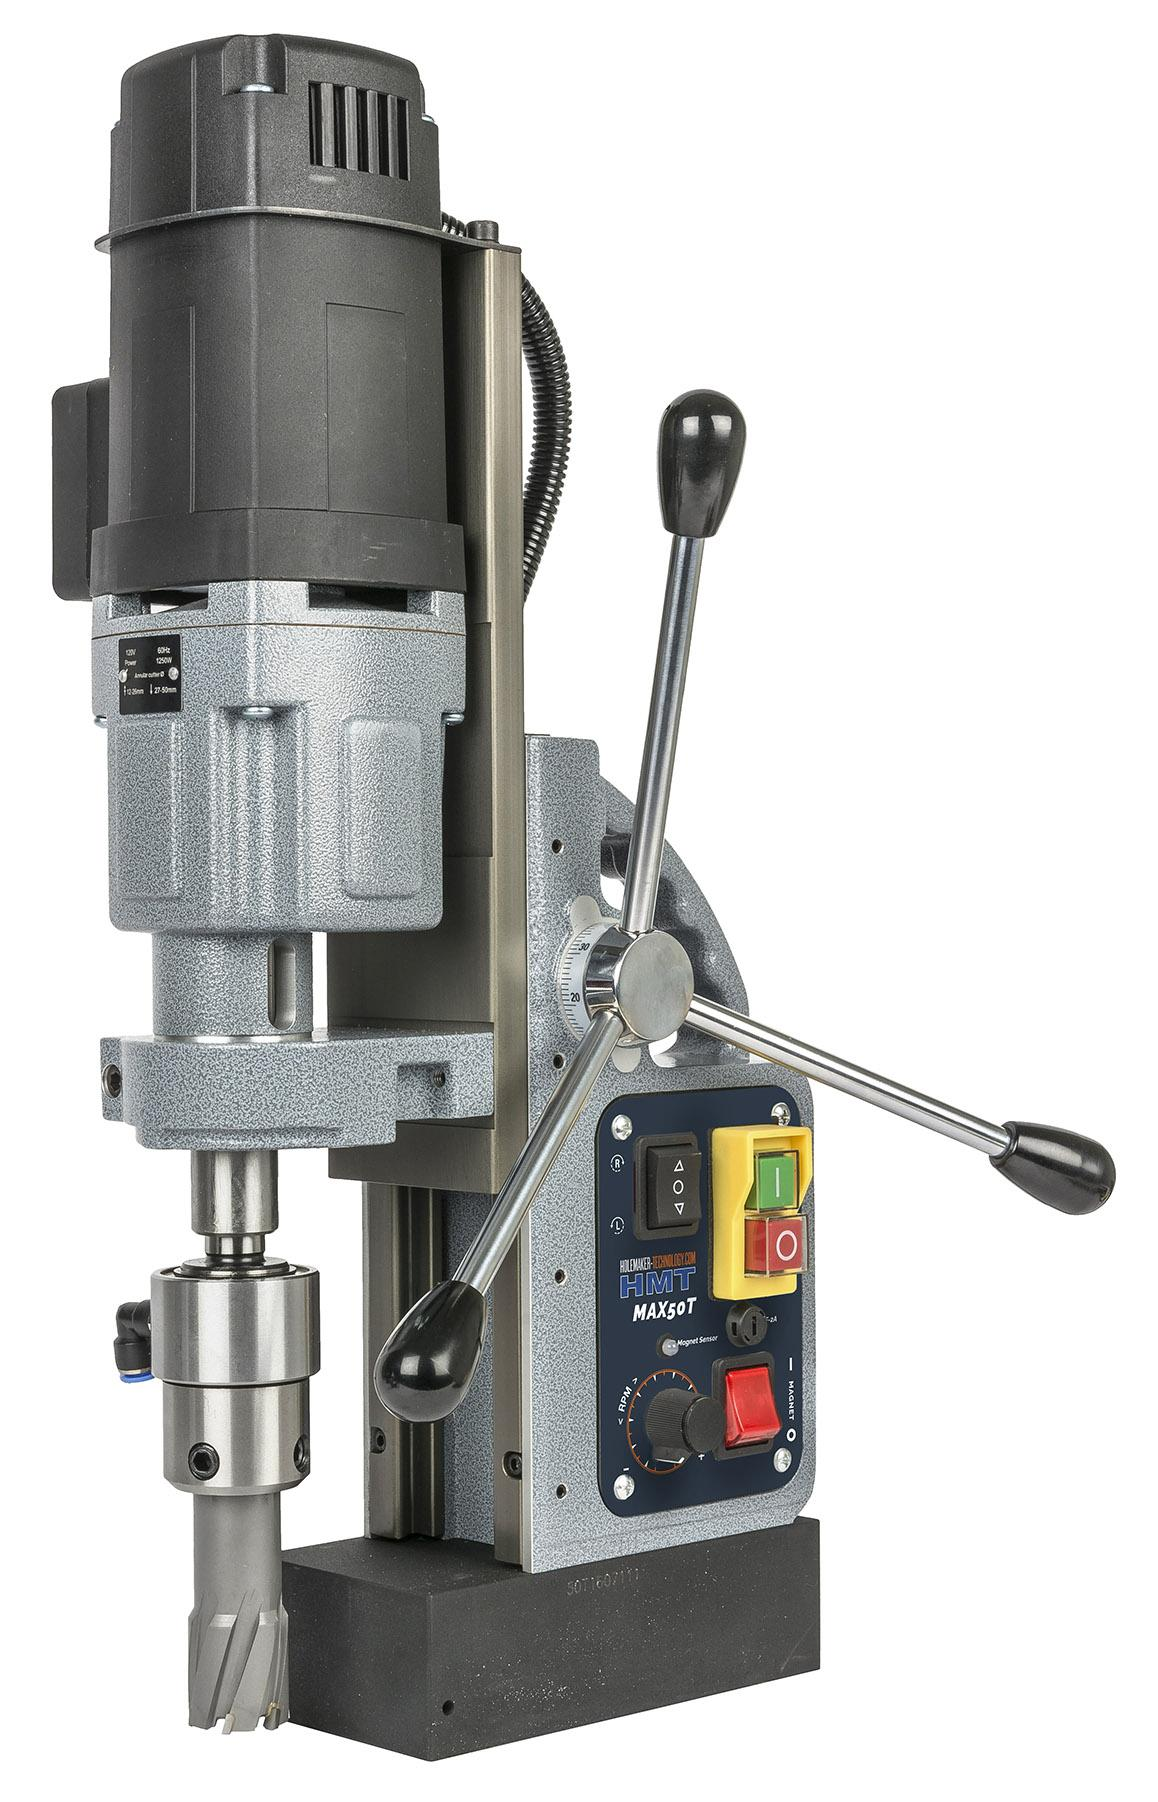 803050-0002  HMT Max-50T Tapping Magnet Drill 240 Volt